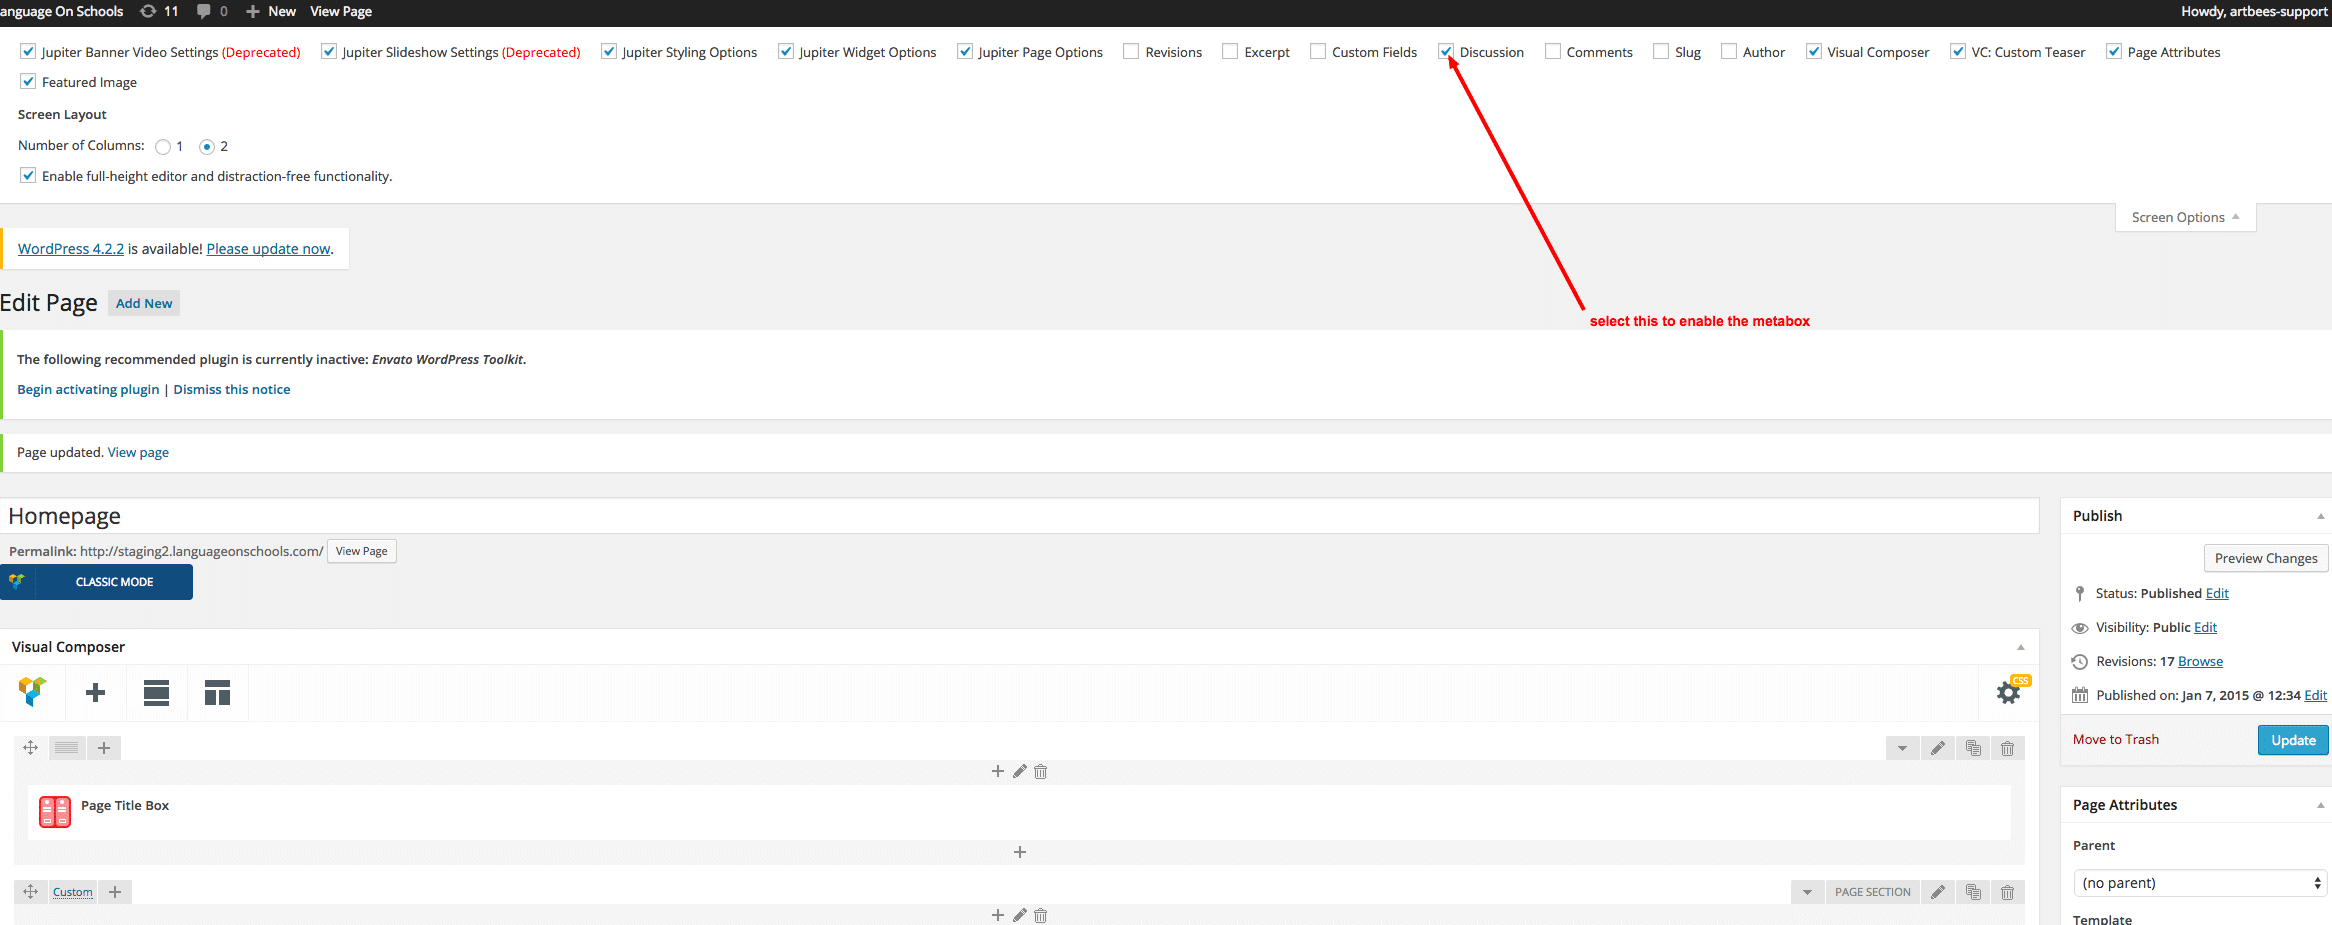 Comments not showing